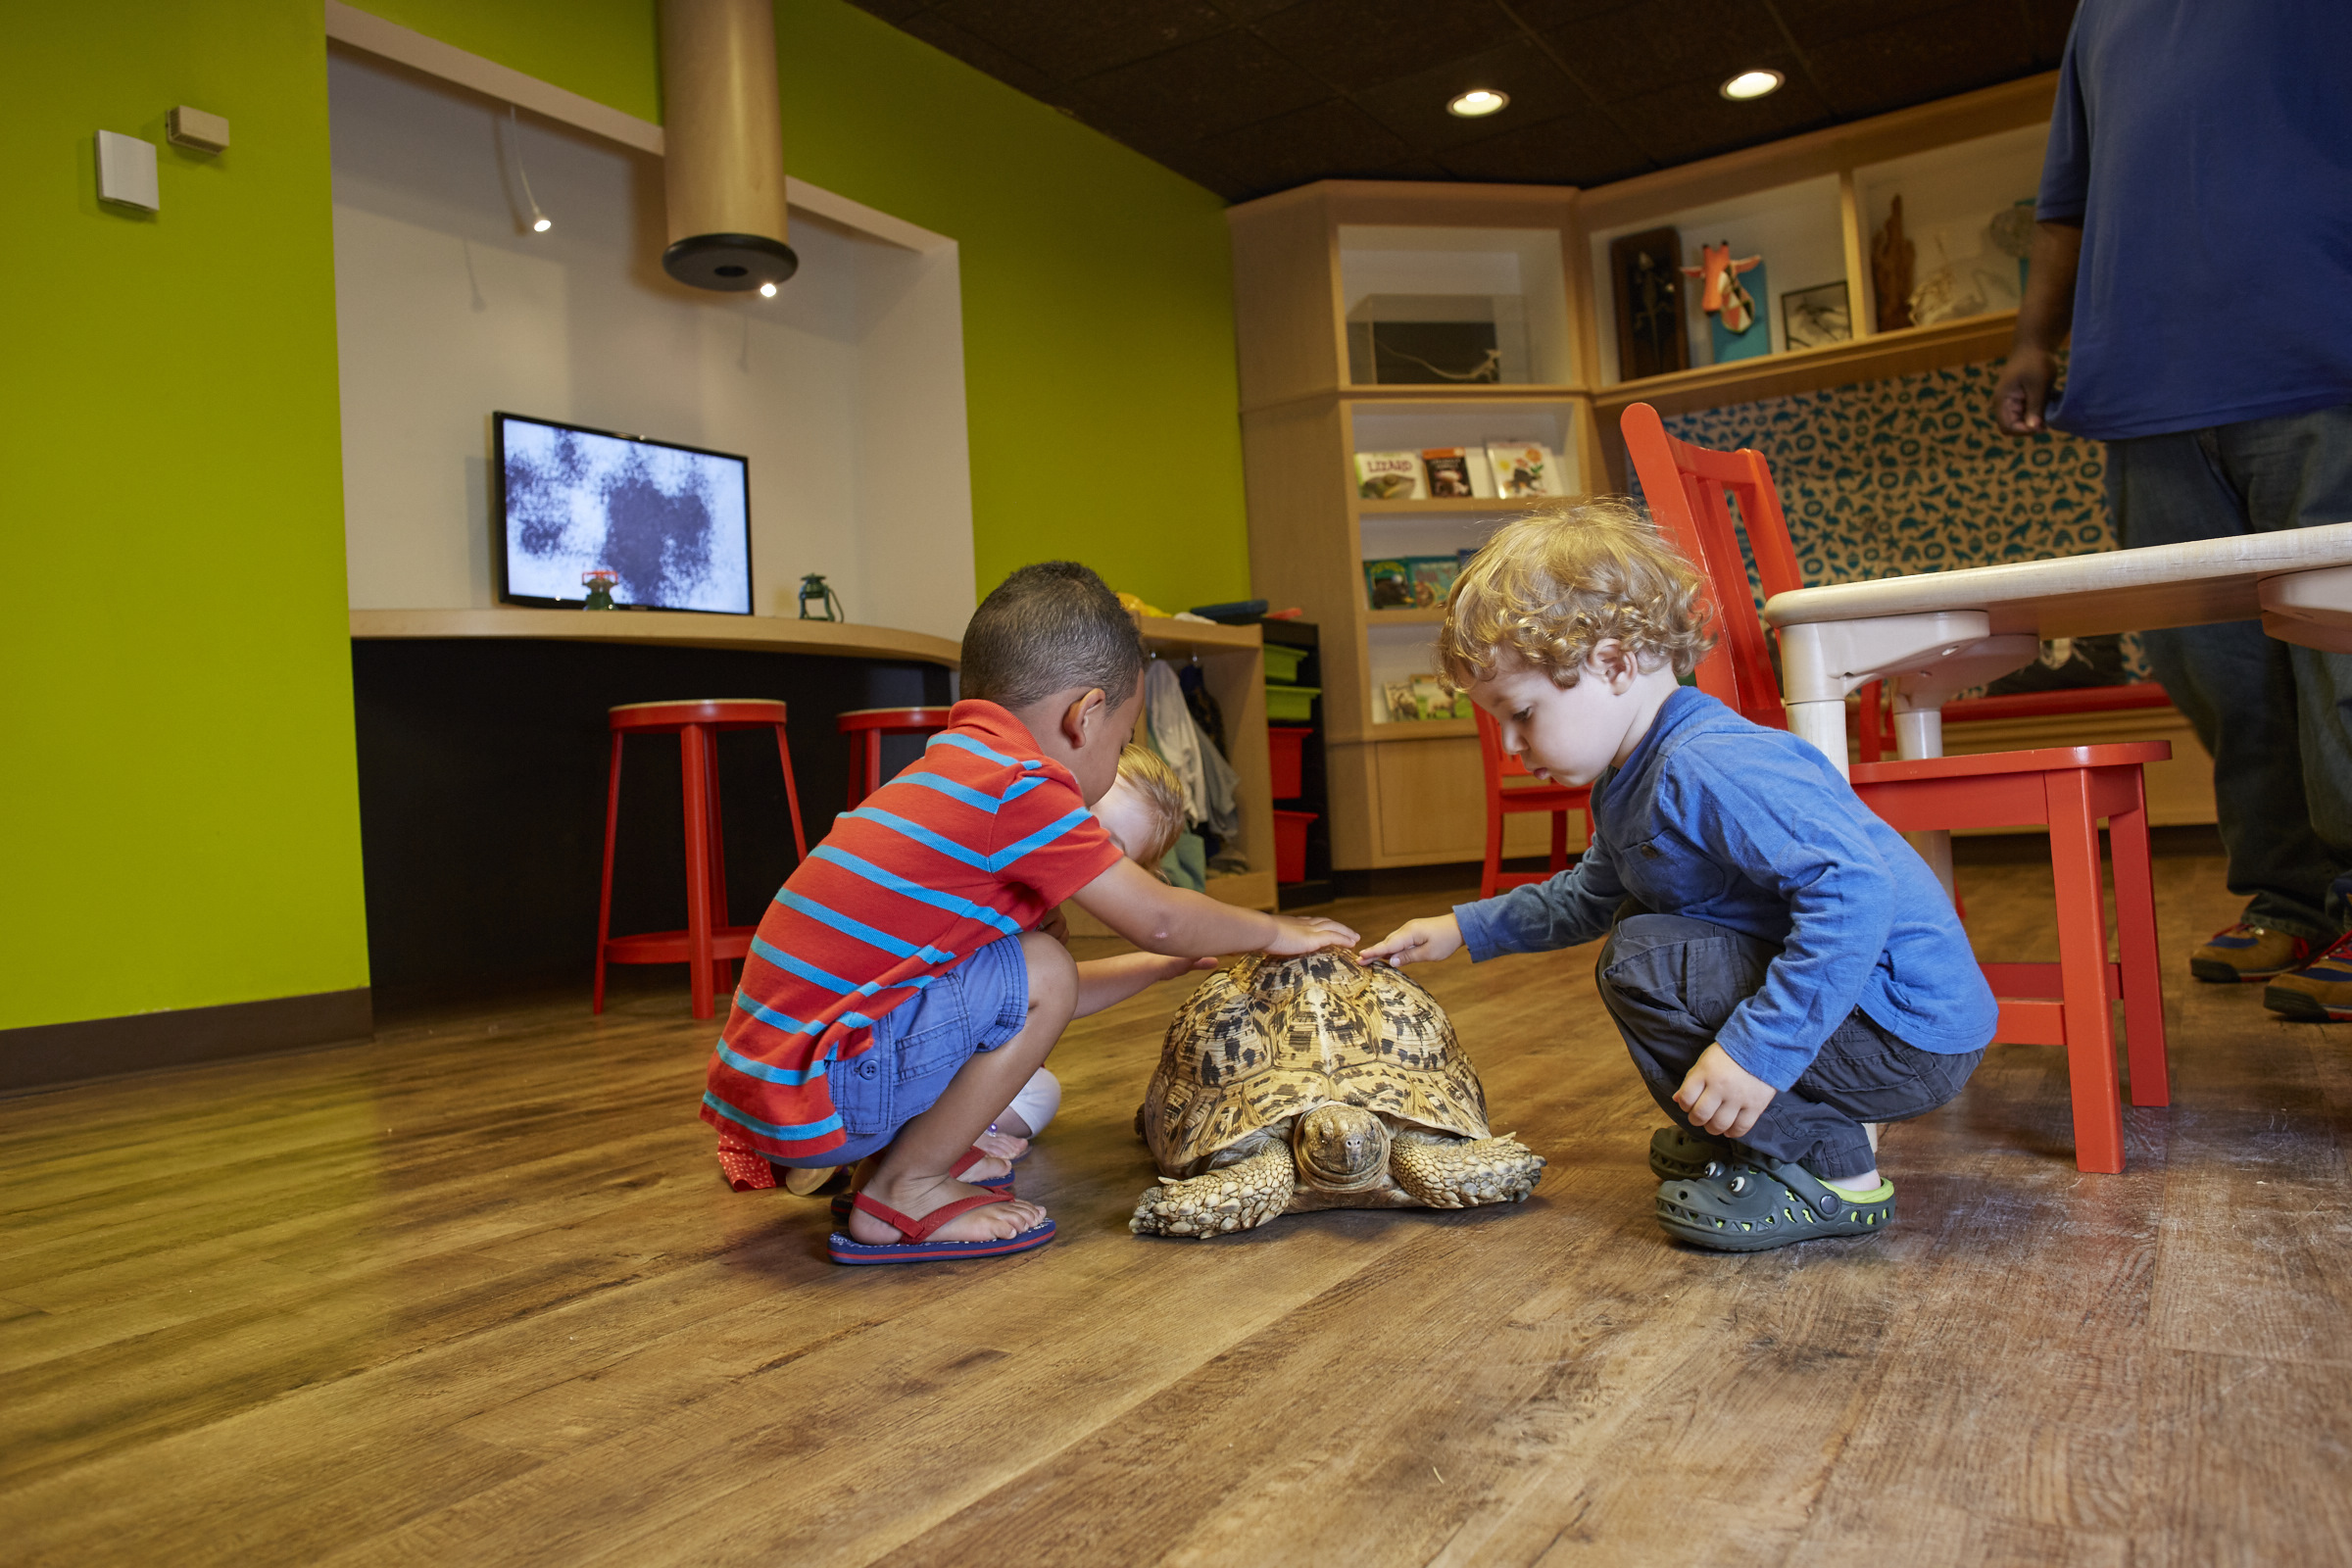 Outside In, the Academy's children's discovery center, has live animals to see every day